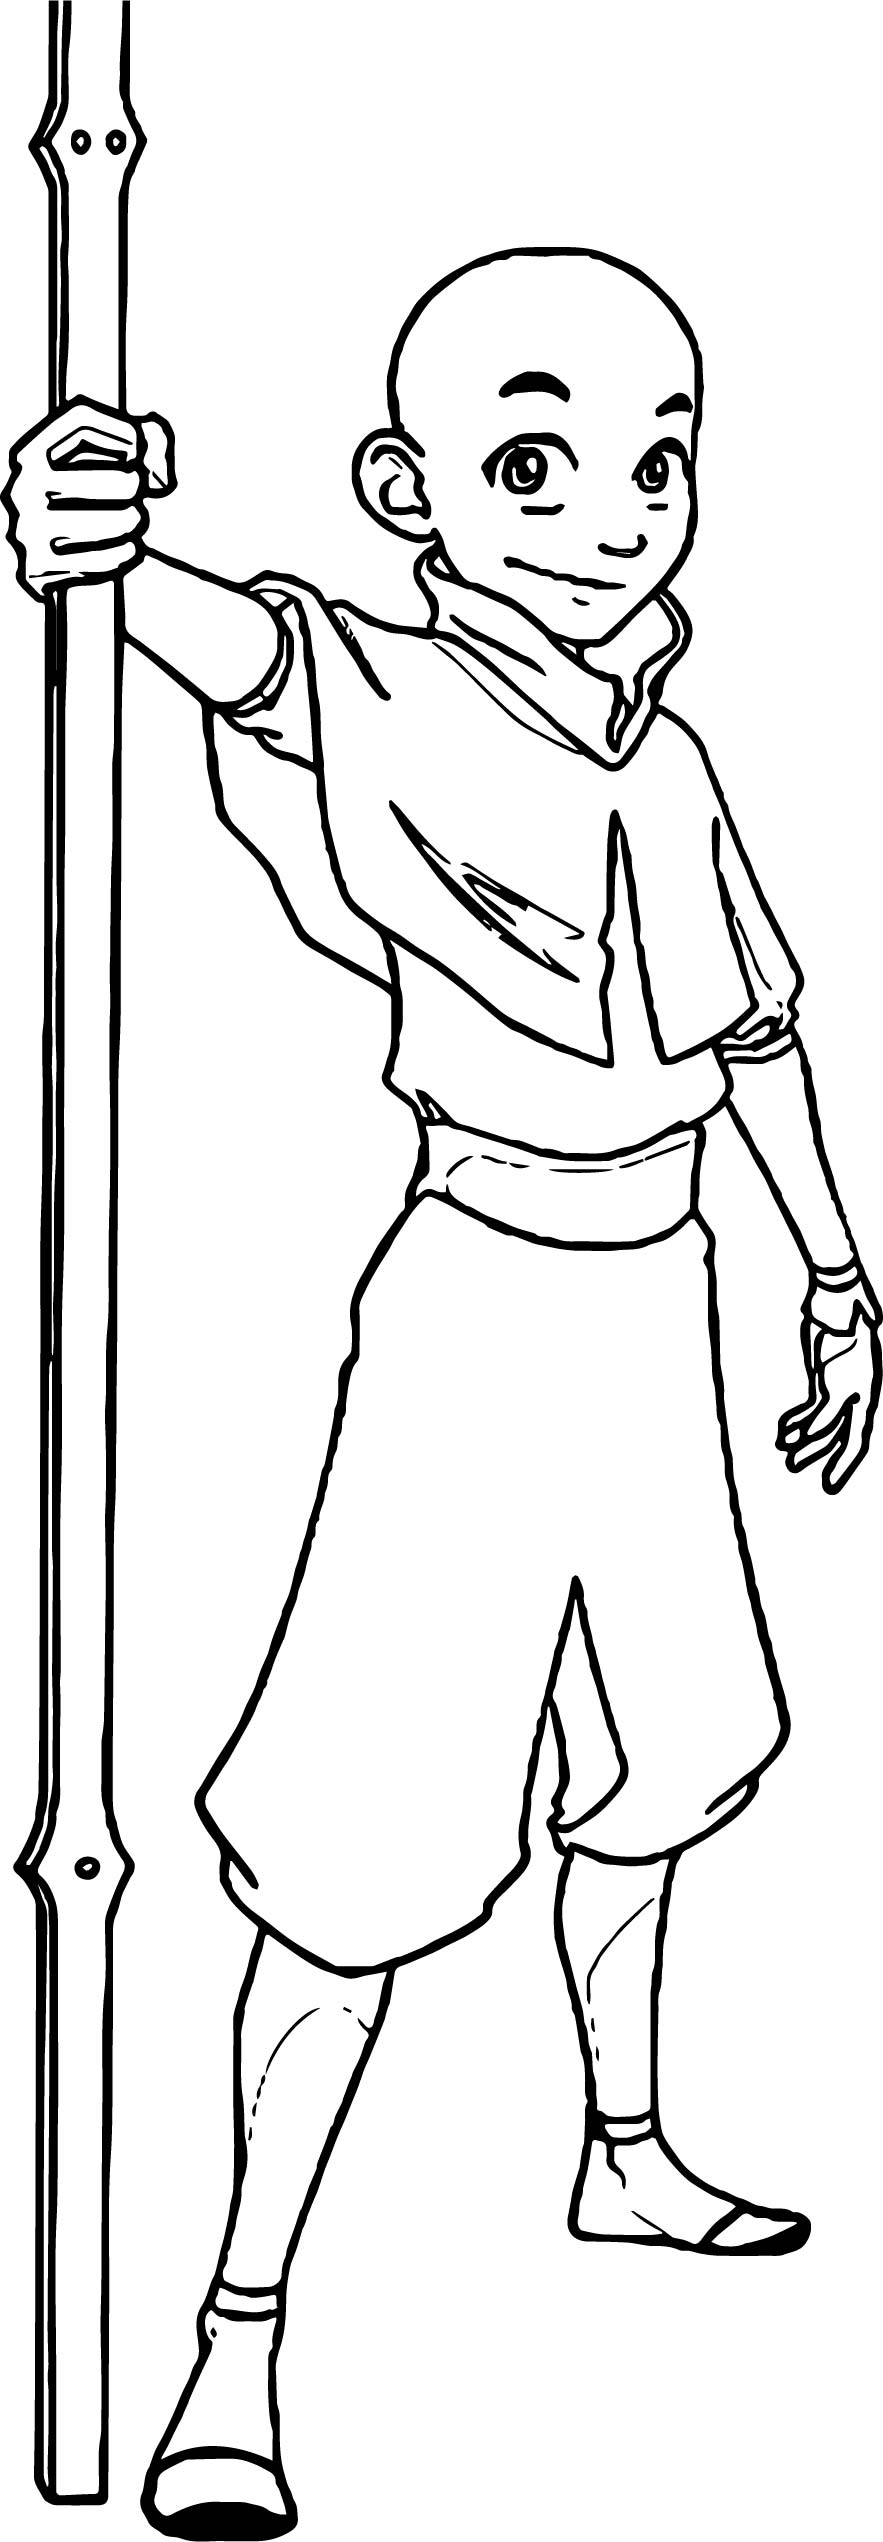 Aang Avatar Aang Coloring Pages | Wecoloringpage.com